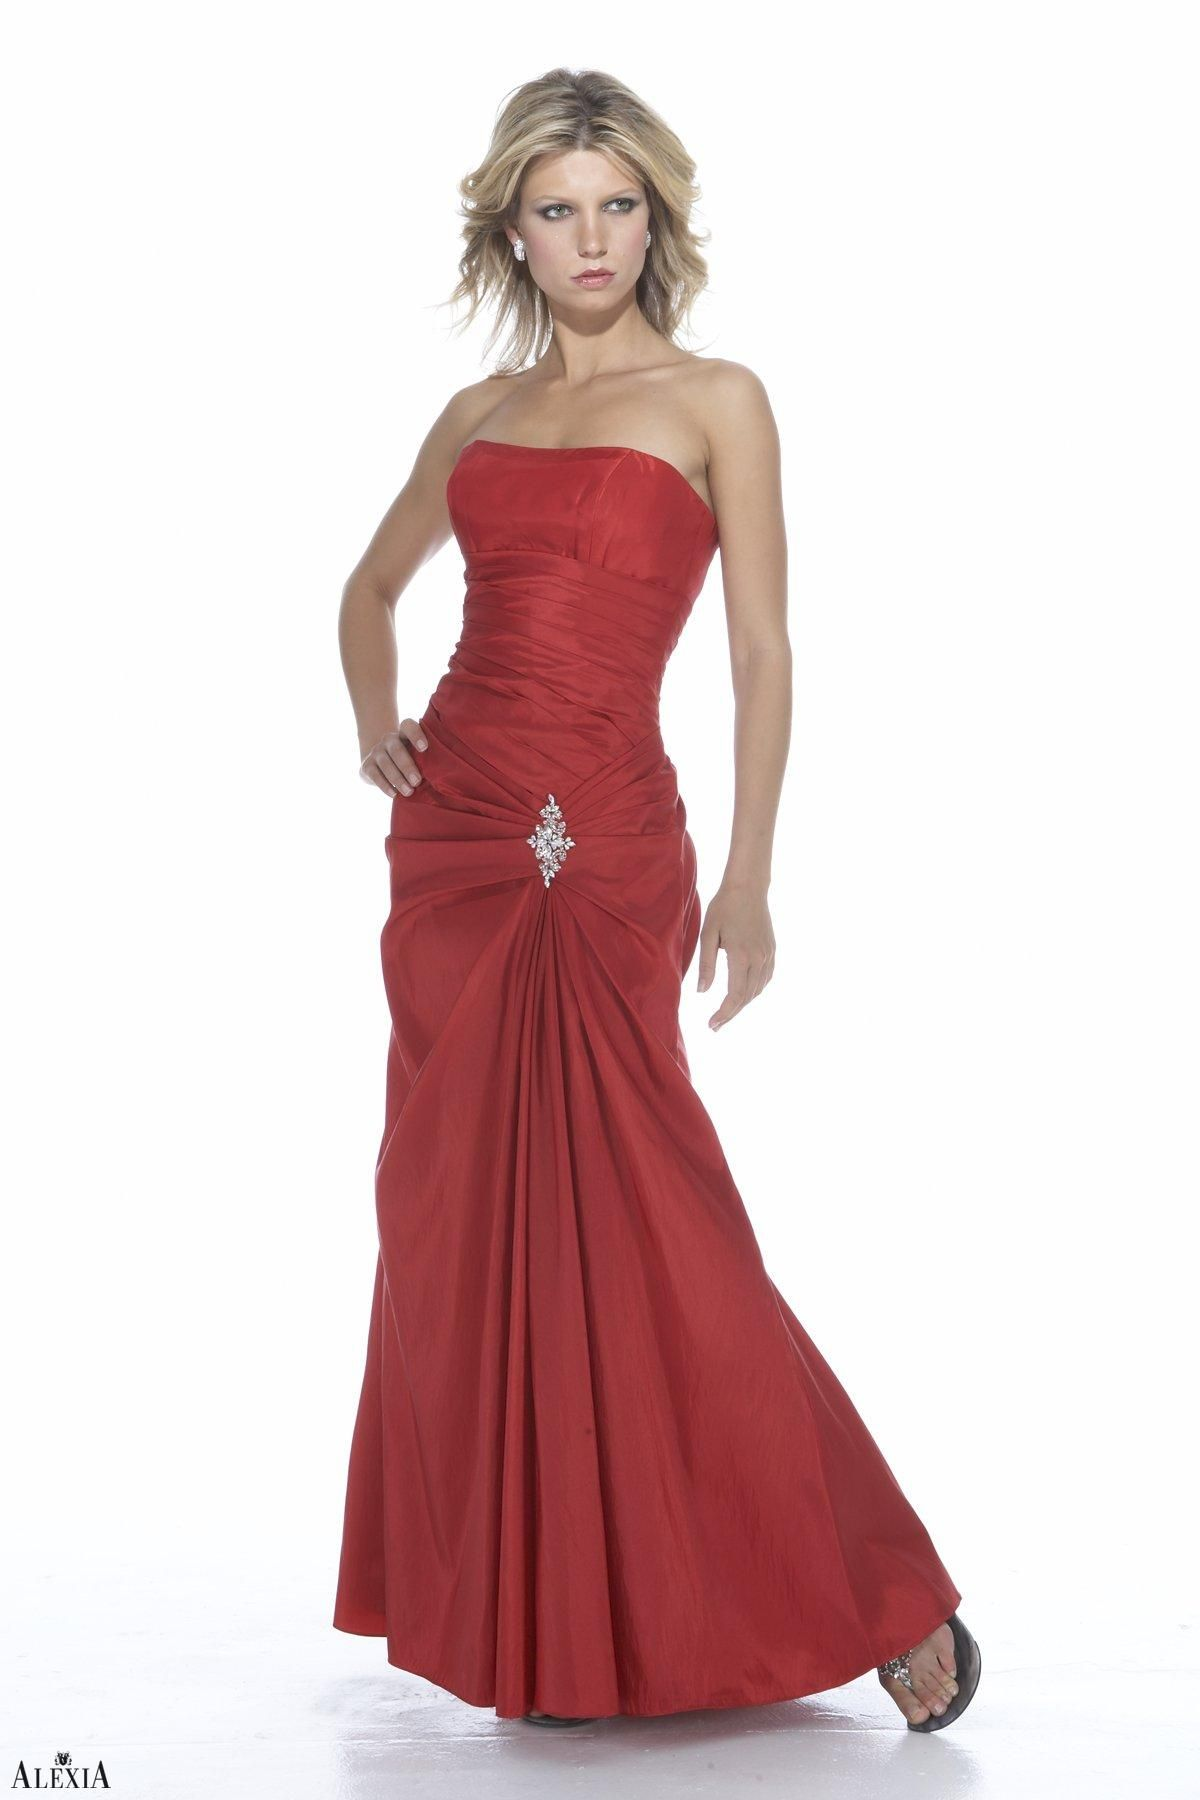 Bridal gowns with red accents  Alexia    In Stock  Free Shipping  Collection